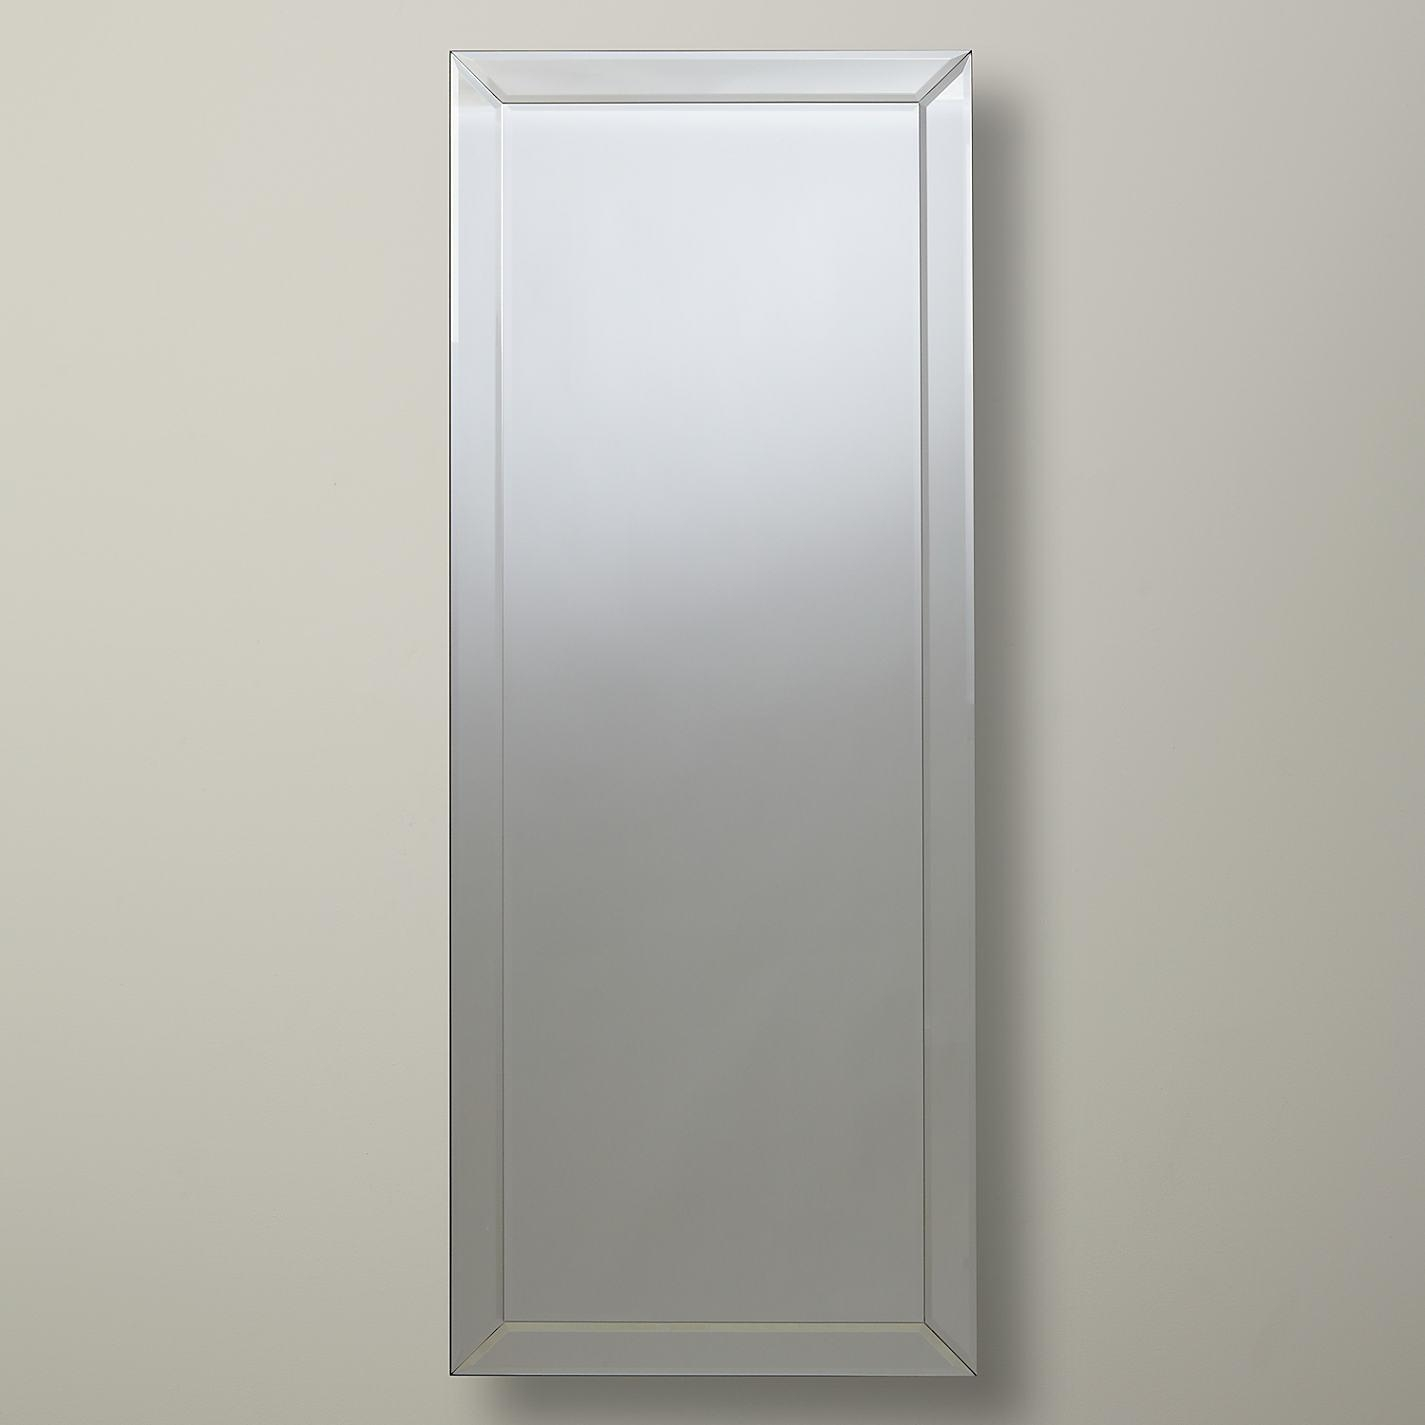 Bevelled Mirror Large – Bevelled Mirror As Indoor Decorative Touch Regarding Large Bevelled Mirror (View 13 of 20)